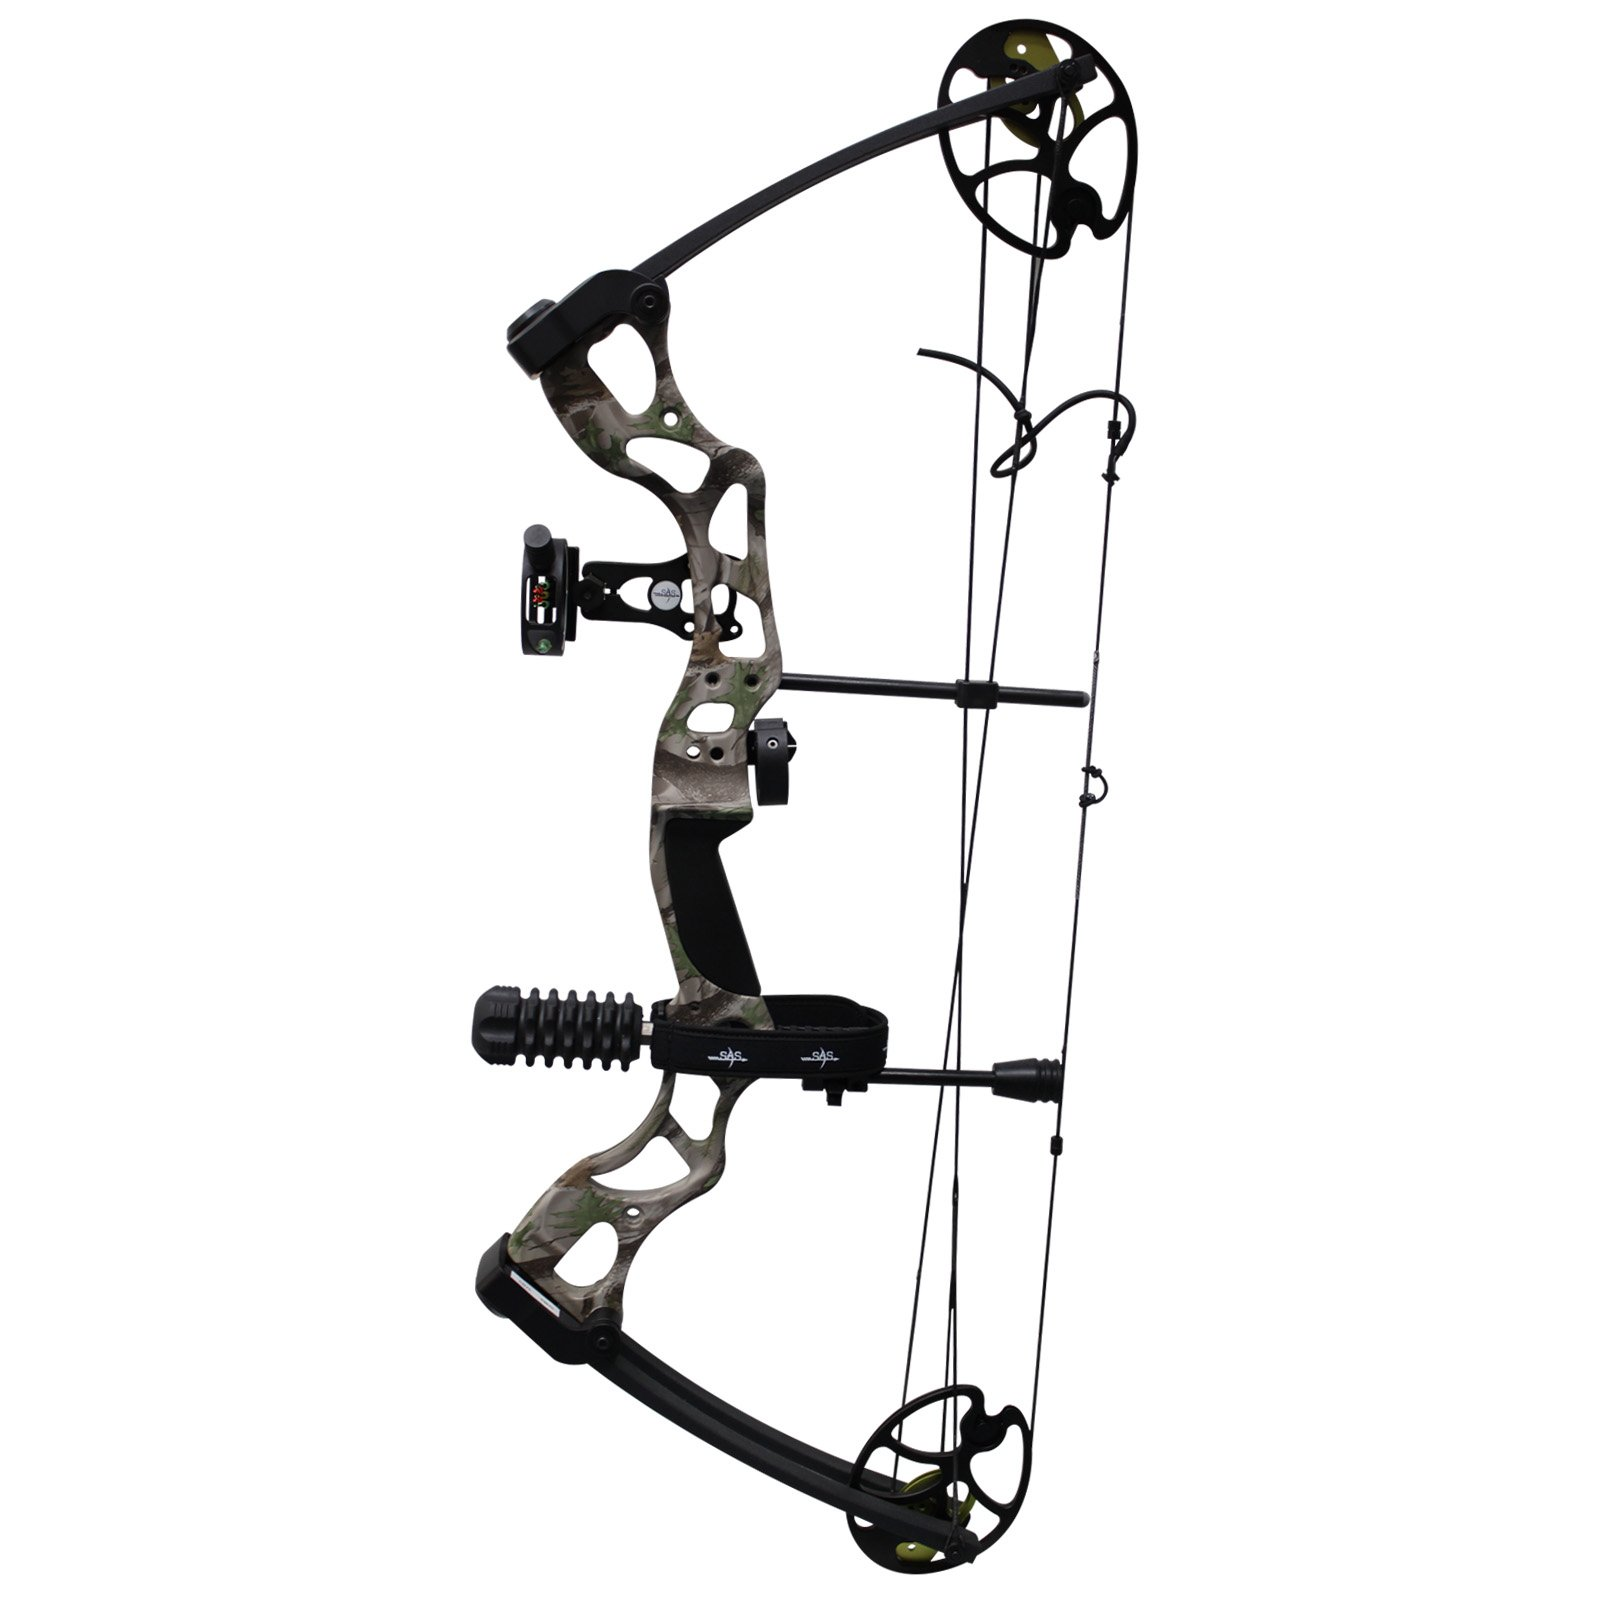 Southland Archery Supply SAS Rage 70 Lbs 30'' Compound Bow (Camo with Full Accessories in Black)